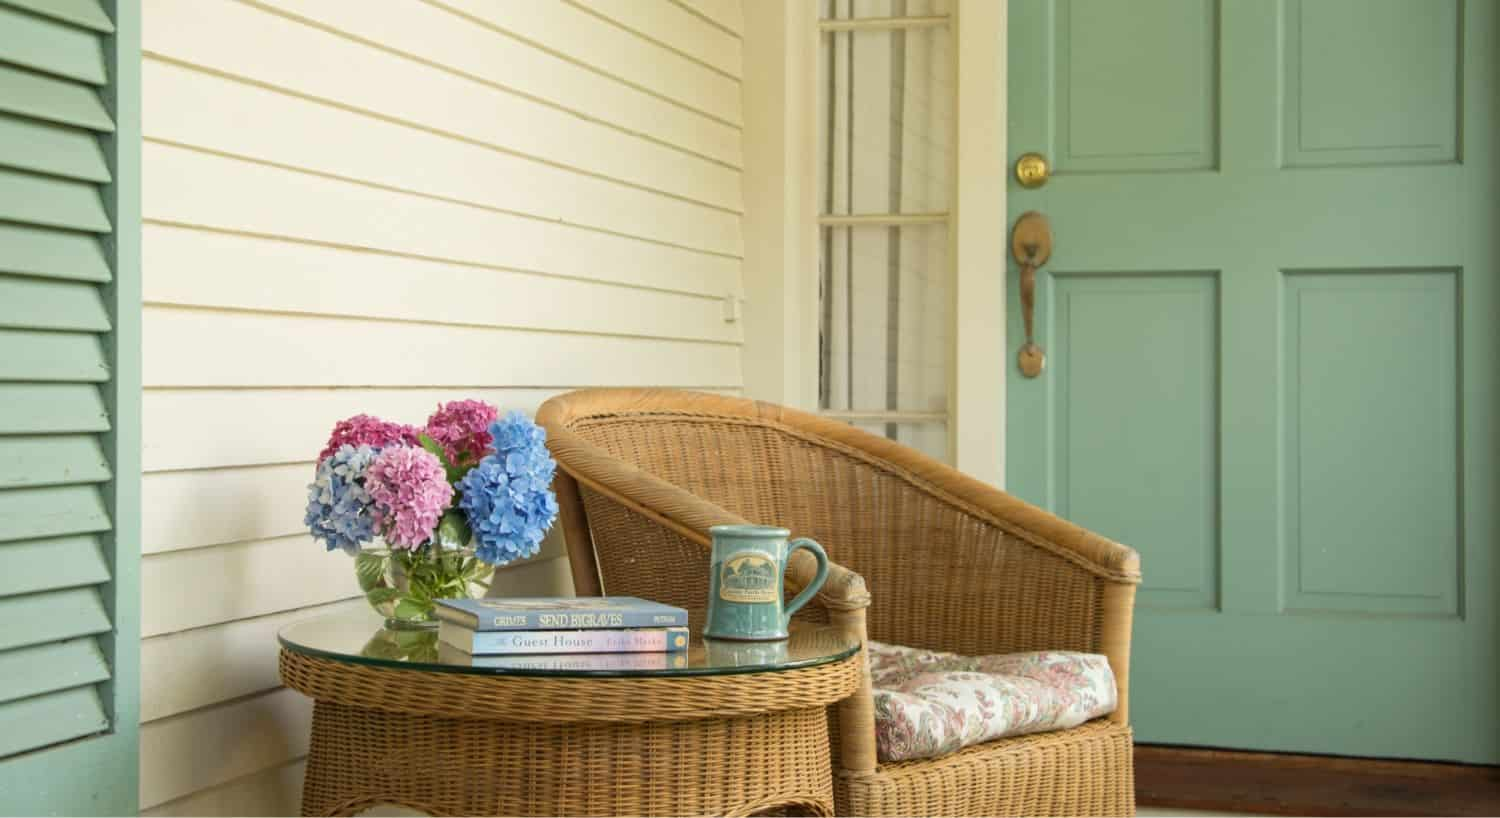 Light brown wicker chair with light paisley cushion next to light brown wicker coffee table with glass top with glass vase, pink and blue flowers, coffe mug, and books sitting on top